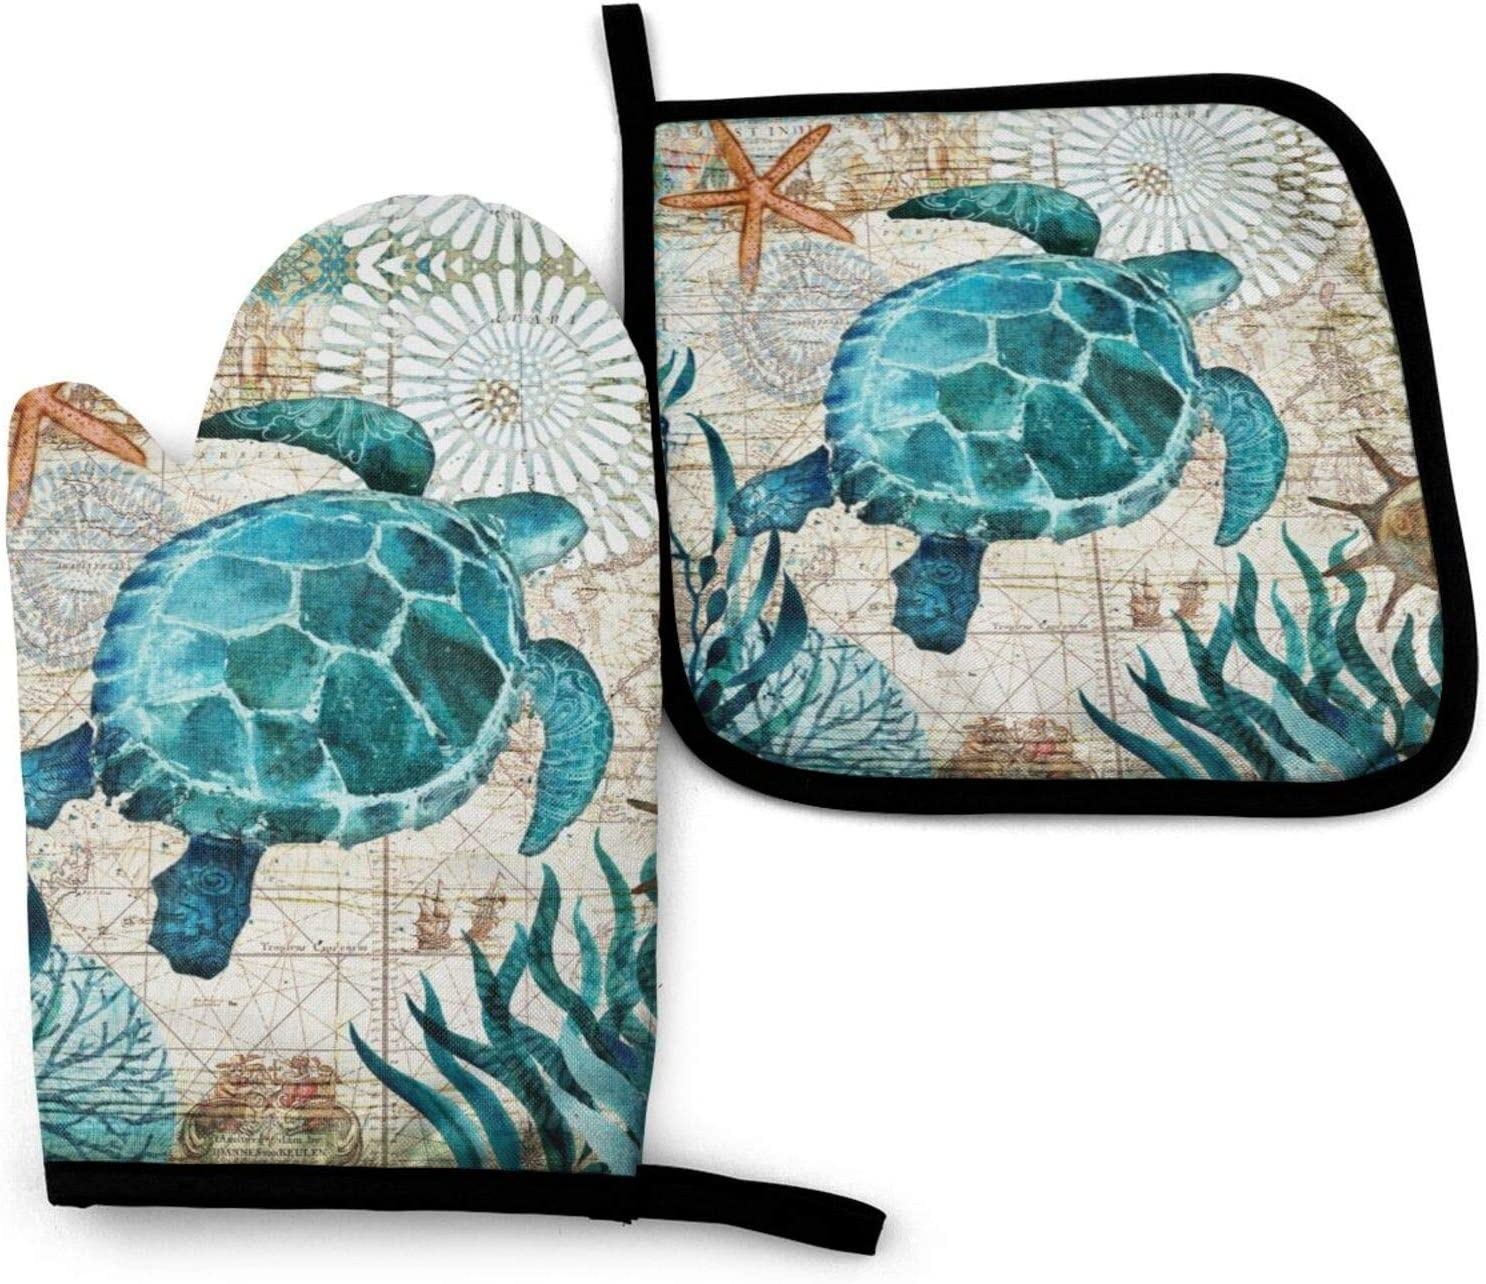 QEKOZU Marine Life Theme Sea Turtle Oven Mitts and Pot Holders for Kitchen Counter Safe Mats, Non-Slip Textured Grip and Heat Resistant Gloves Perfect for Cooking Baking BBQ Grilling (2-Piece Set)